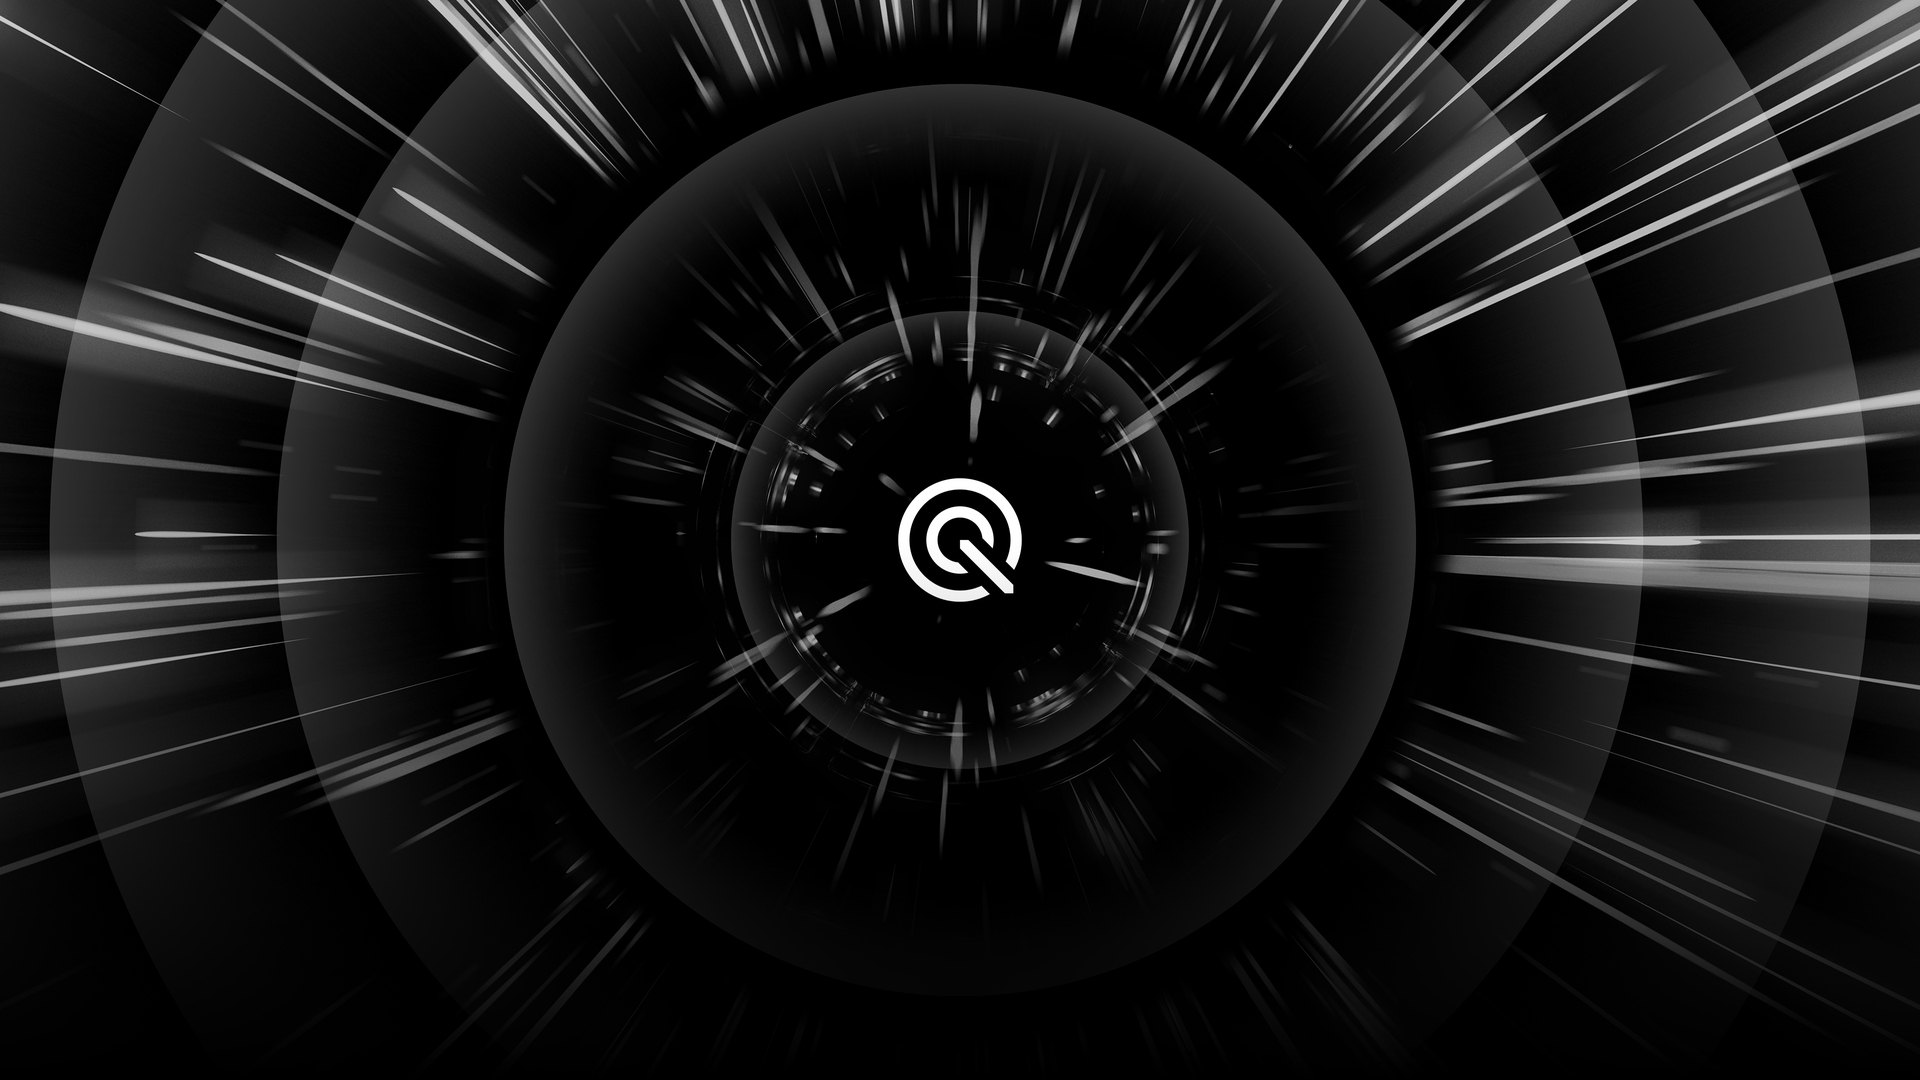 A warp-speed tunnel showing the quantum 2,0 dual wireless logo in the center.